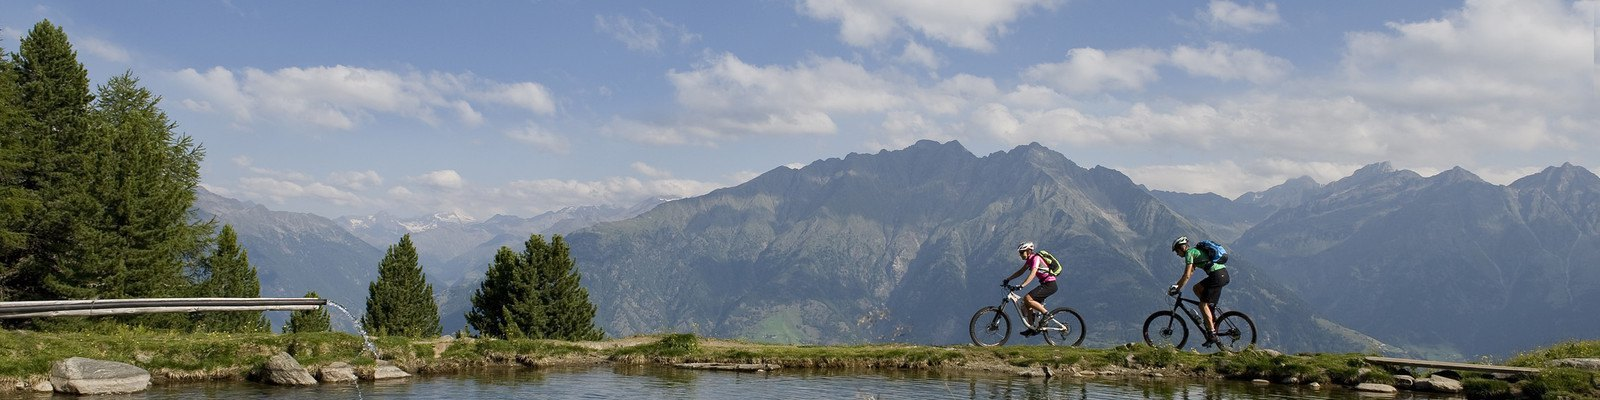 Mountainbike Tour See in Naturns